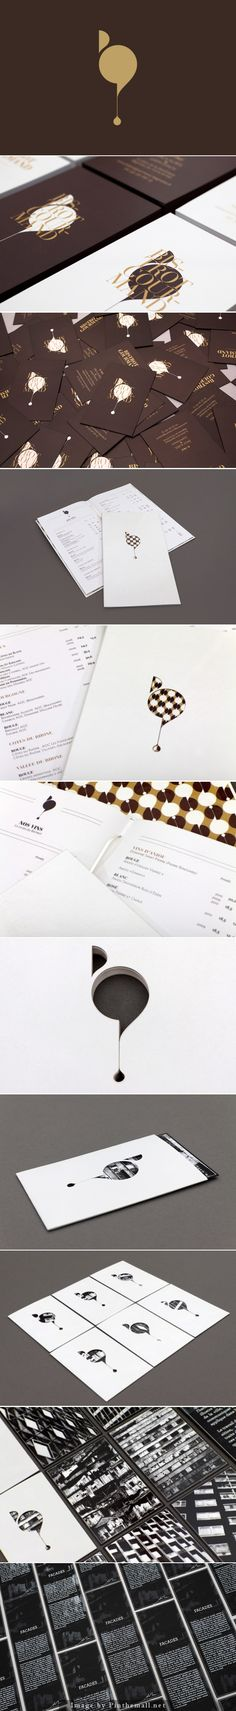 #inspiration Torso Vertical Inspirations Blogging inspirational work, a visual source for Torso Vertical. Connect with Torso Vertical Branding, advertising & Illustration www.facebook.com/TorsoVerticalDesign @torsovertical www.torsovertical.com